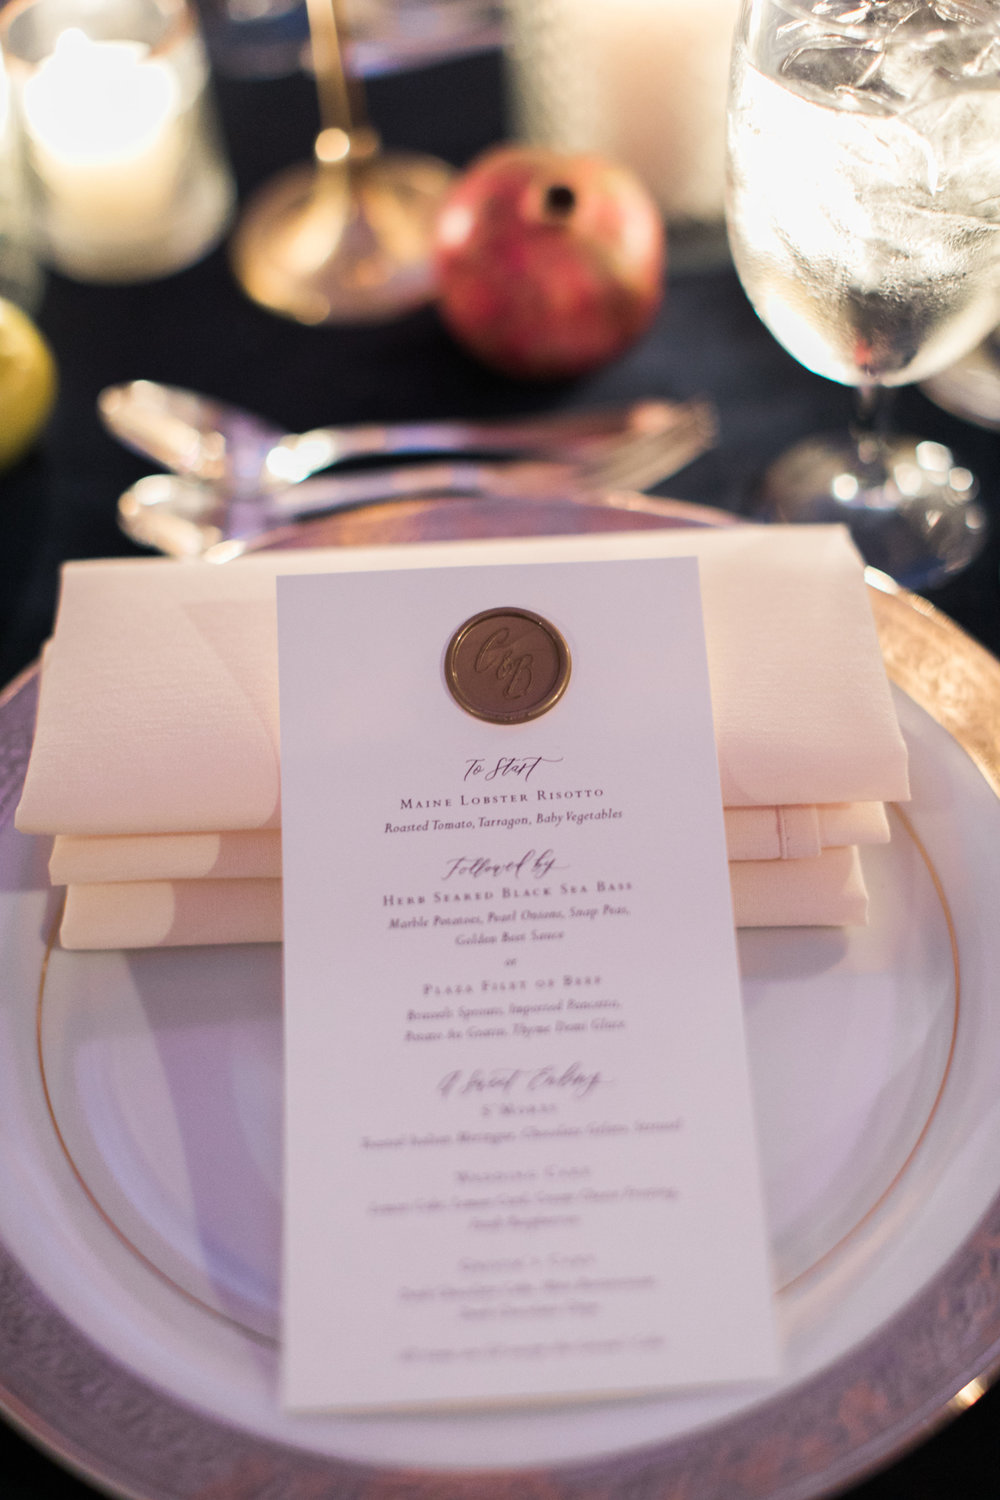 Plaza Hotel Wedding, Judy Pak Photography, Ang Weddings and Events planning, Putnam & Putnam flowers, 1440 menu design